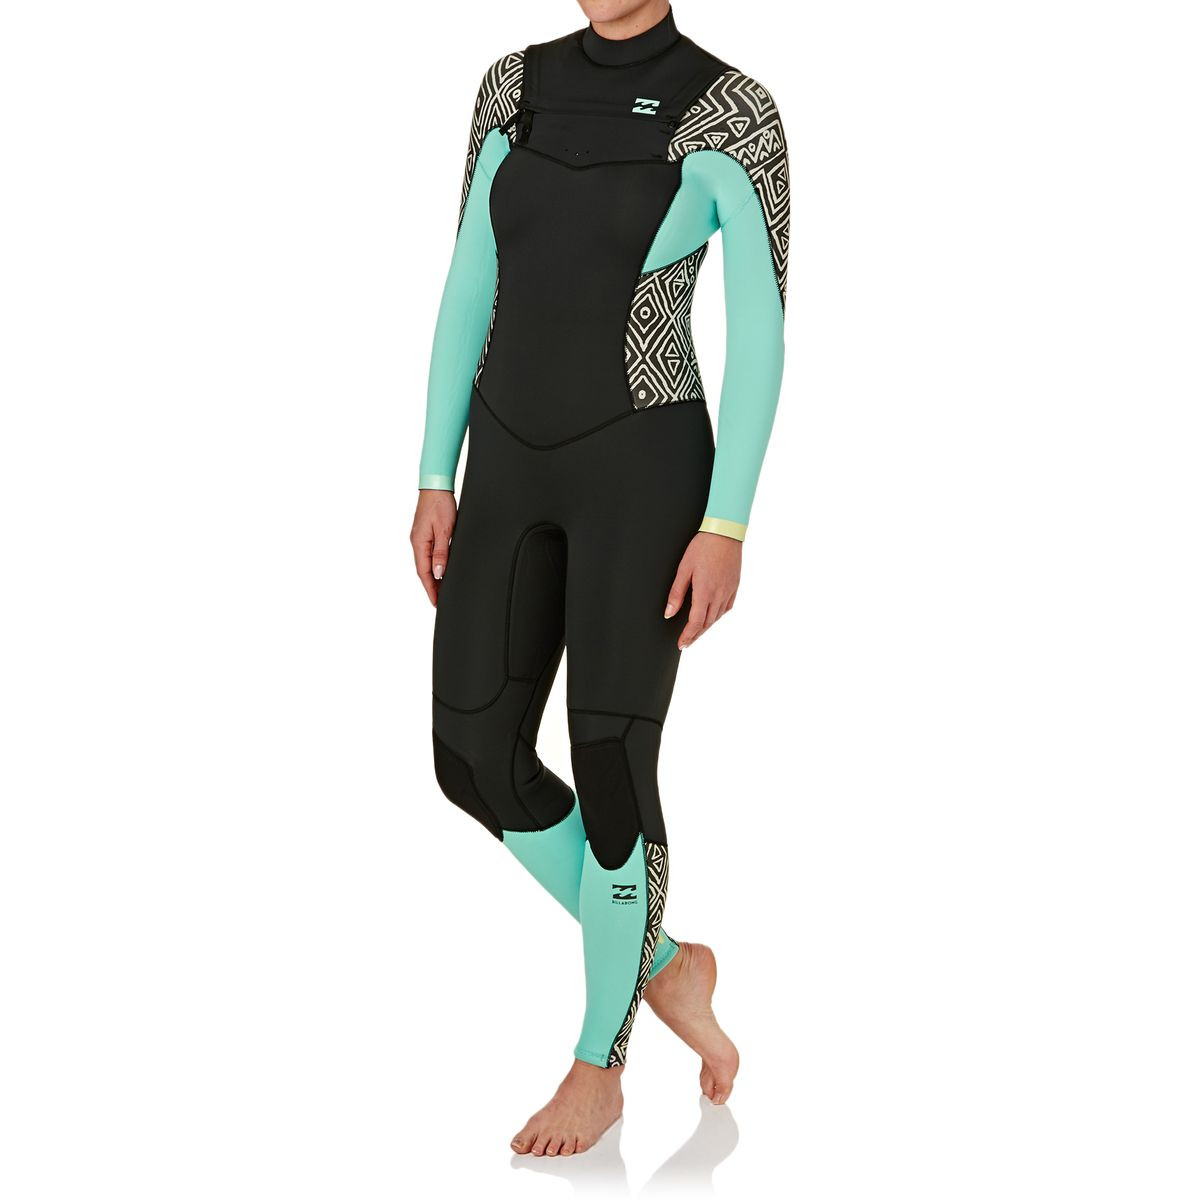 ad23d28269b Billabong Womens Synergy 3 2mm 2017 Chest Zip Wetsuit - Geo Diamond